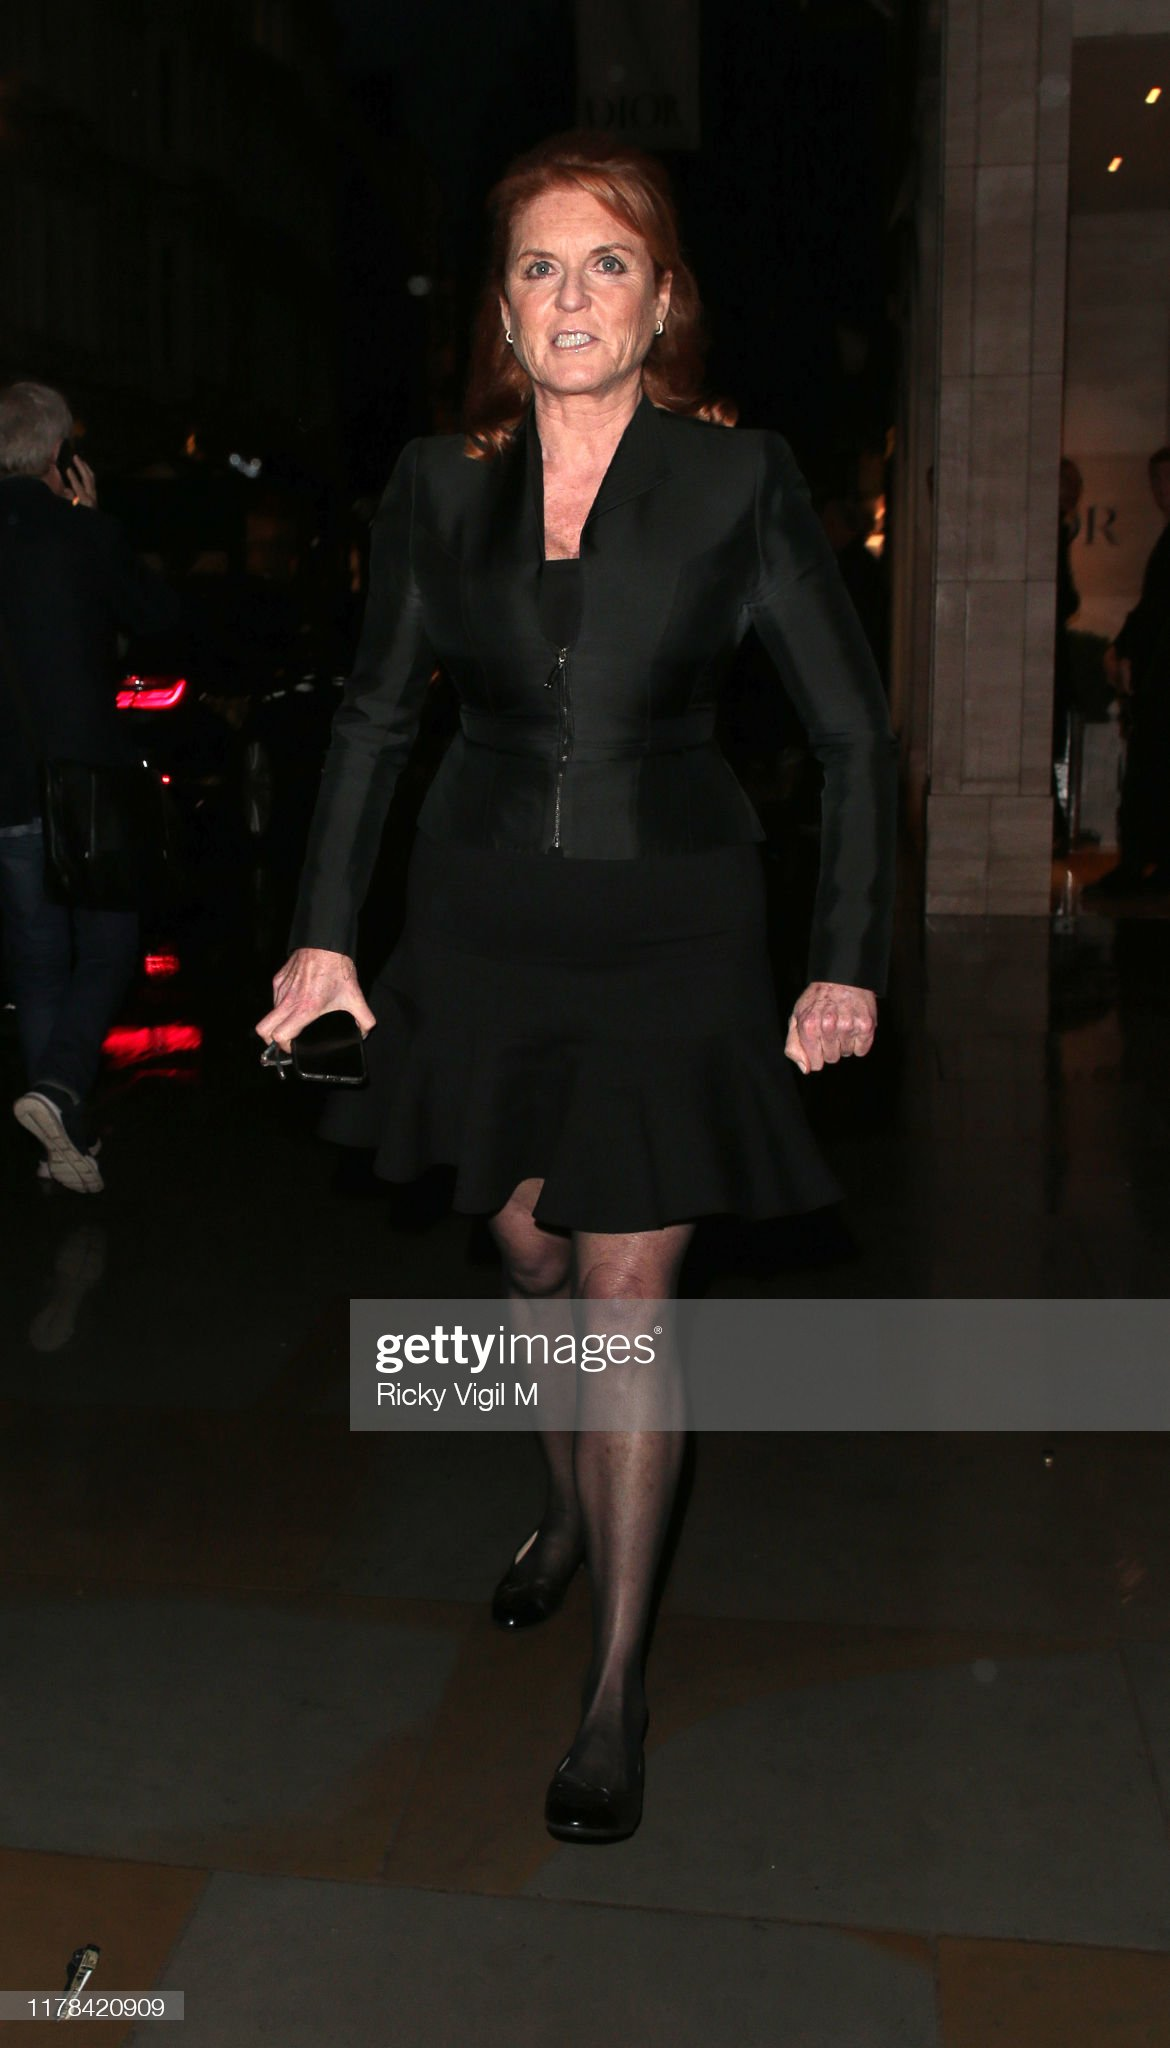 https://media.gettyimages.com/photos/sarah-duchess-of-york-seen-attending-the-dior-sessions-book-launch-picture-id1178420909?s=2048x2048